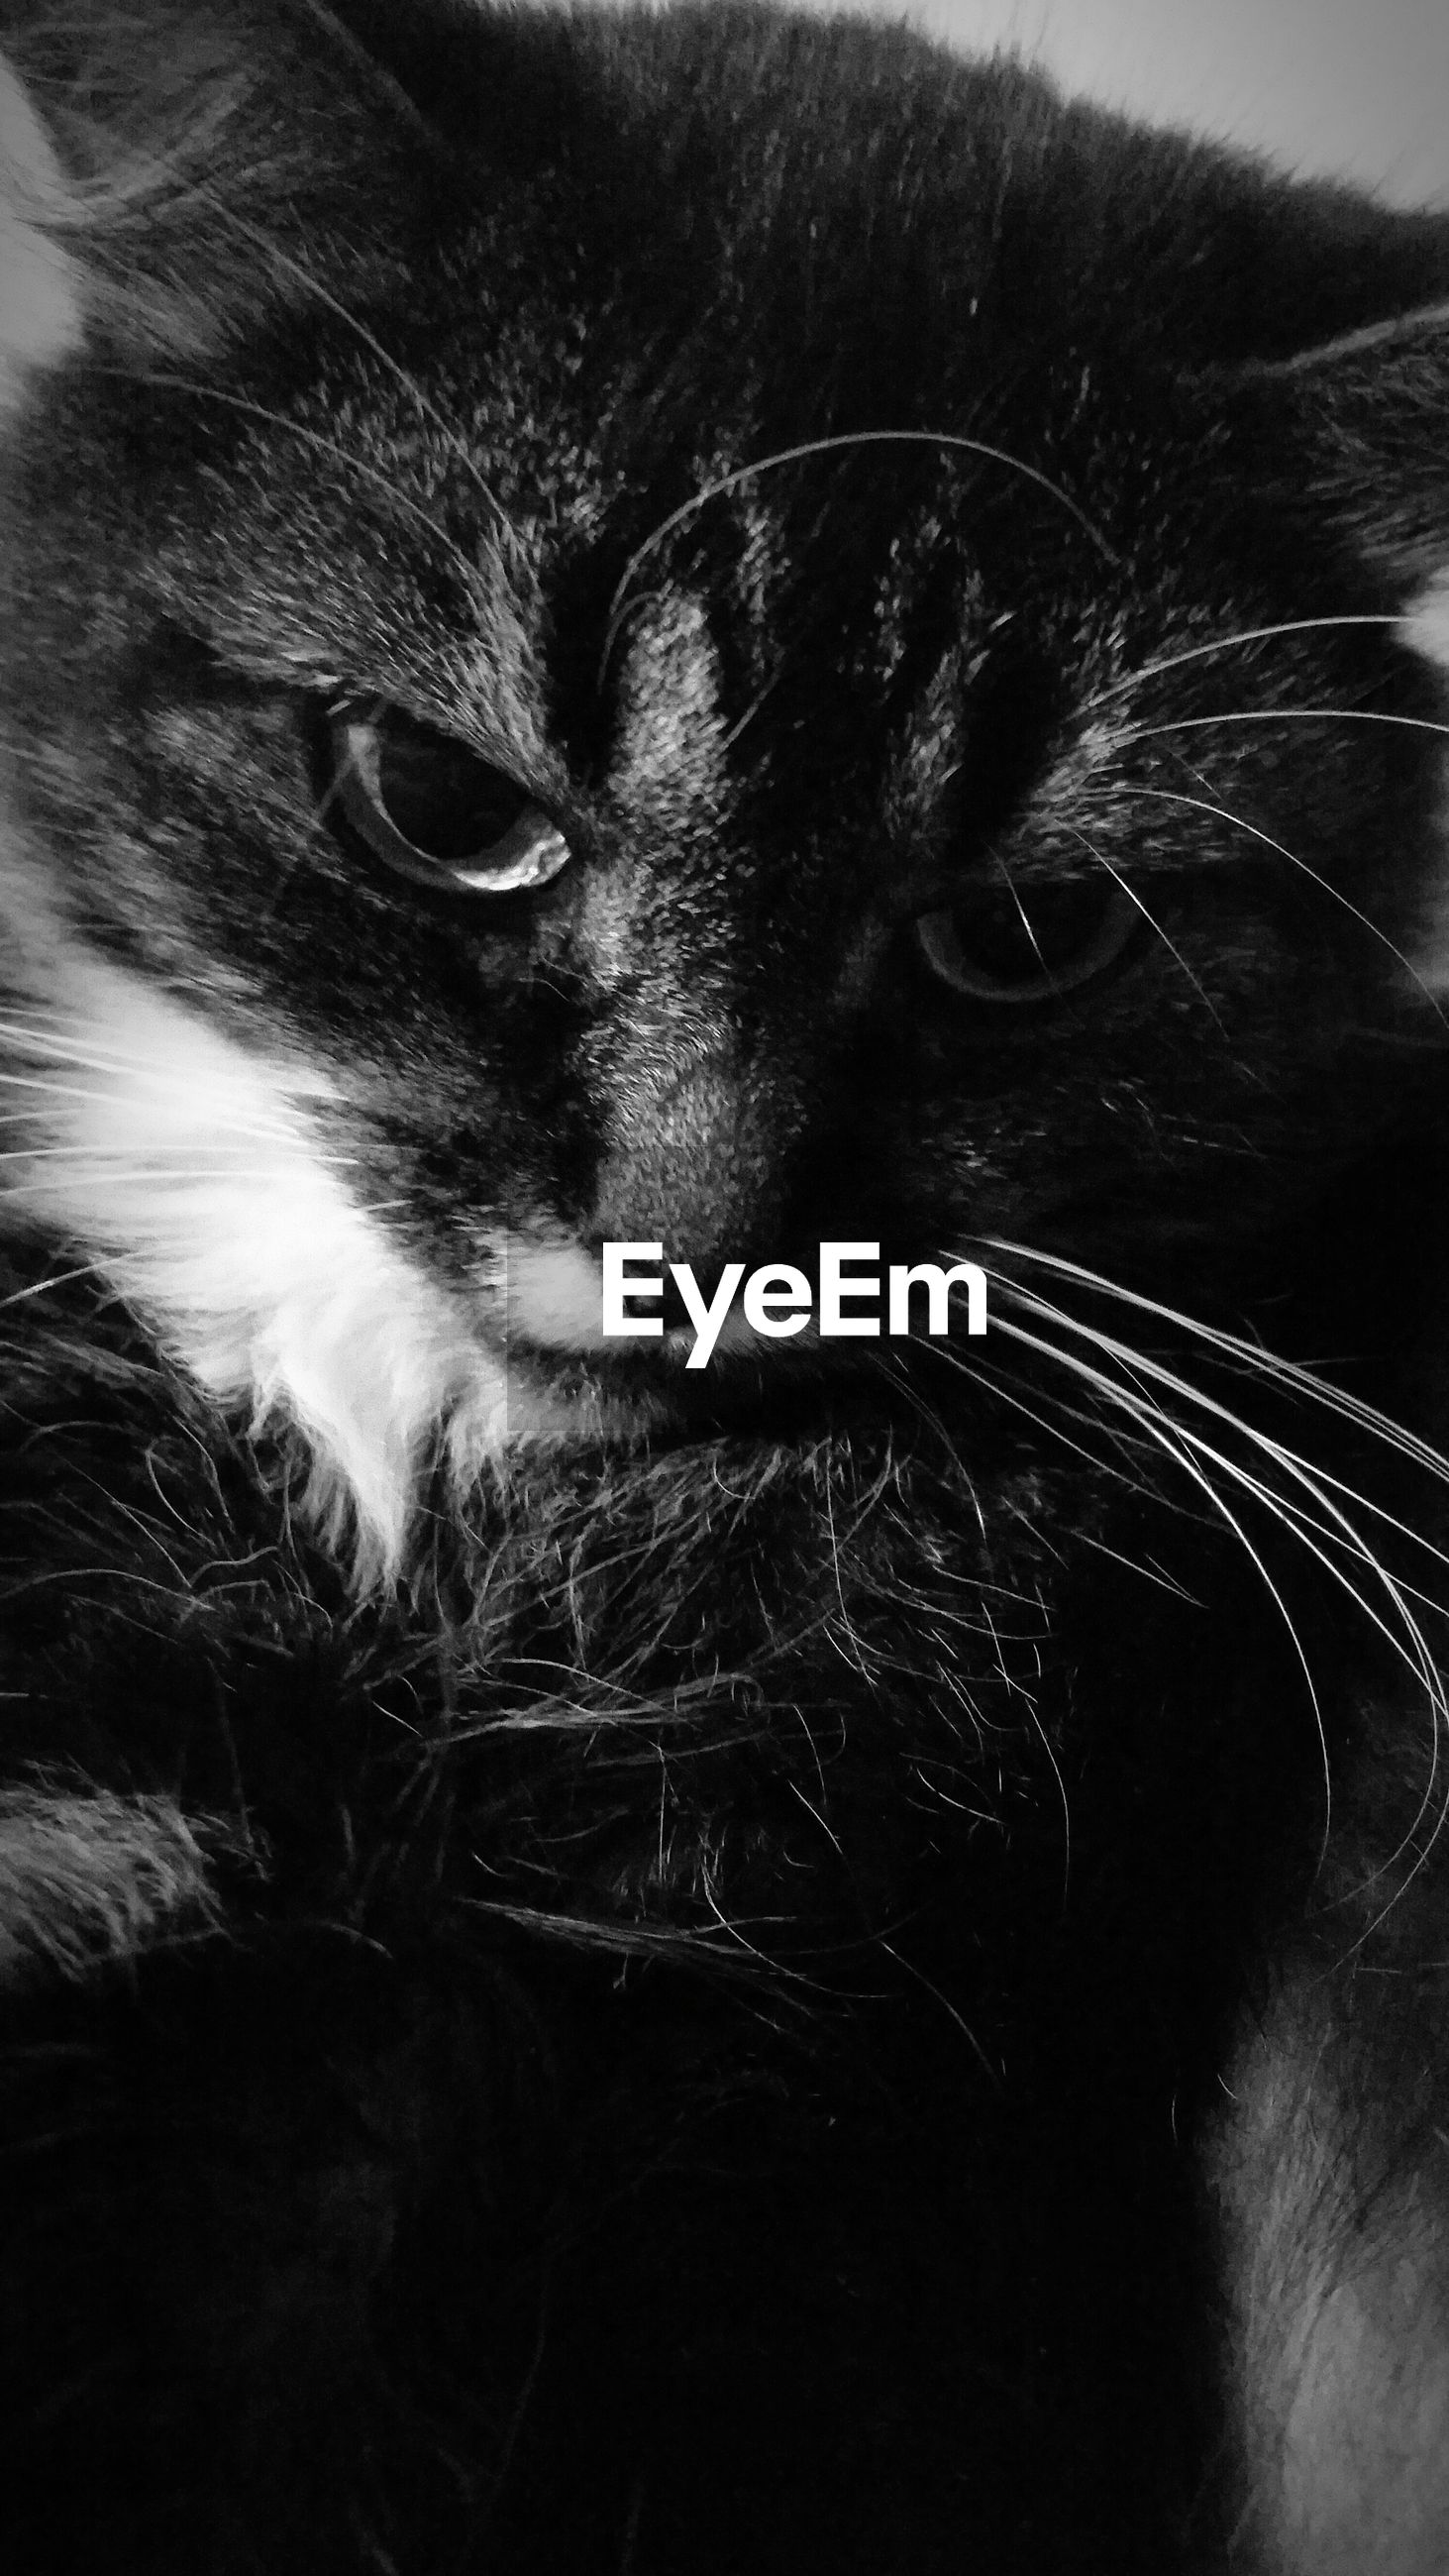 domestic cat, cat, pets, domestic animals, one animal, animal themes, feline, mammal, whisker, indoors, close-up, animal head, portrait, looking at camera, animal eye, staring, animal body part, relaxation, no people, alertness